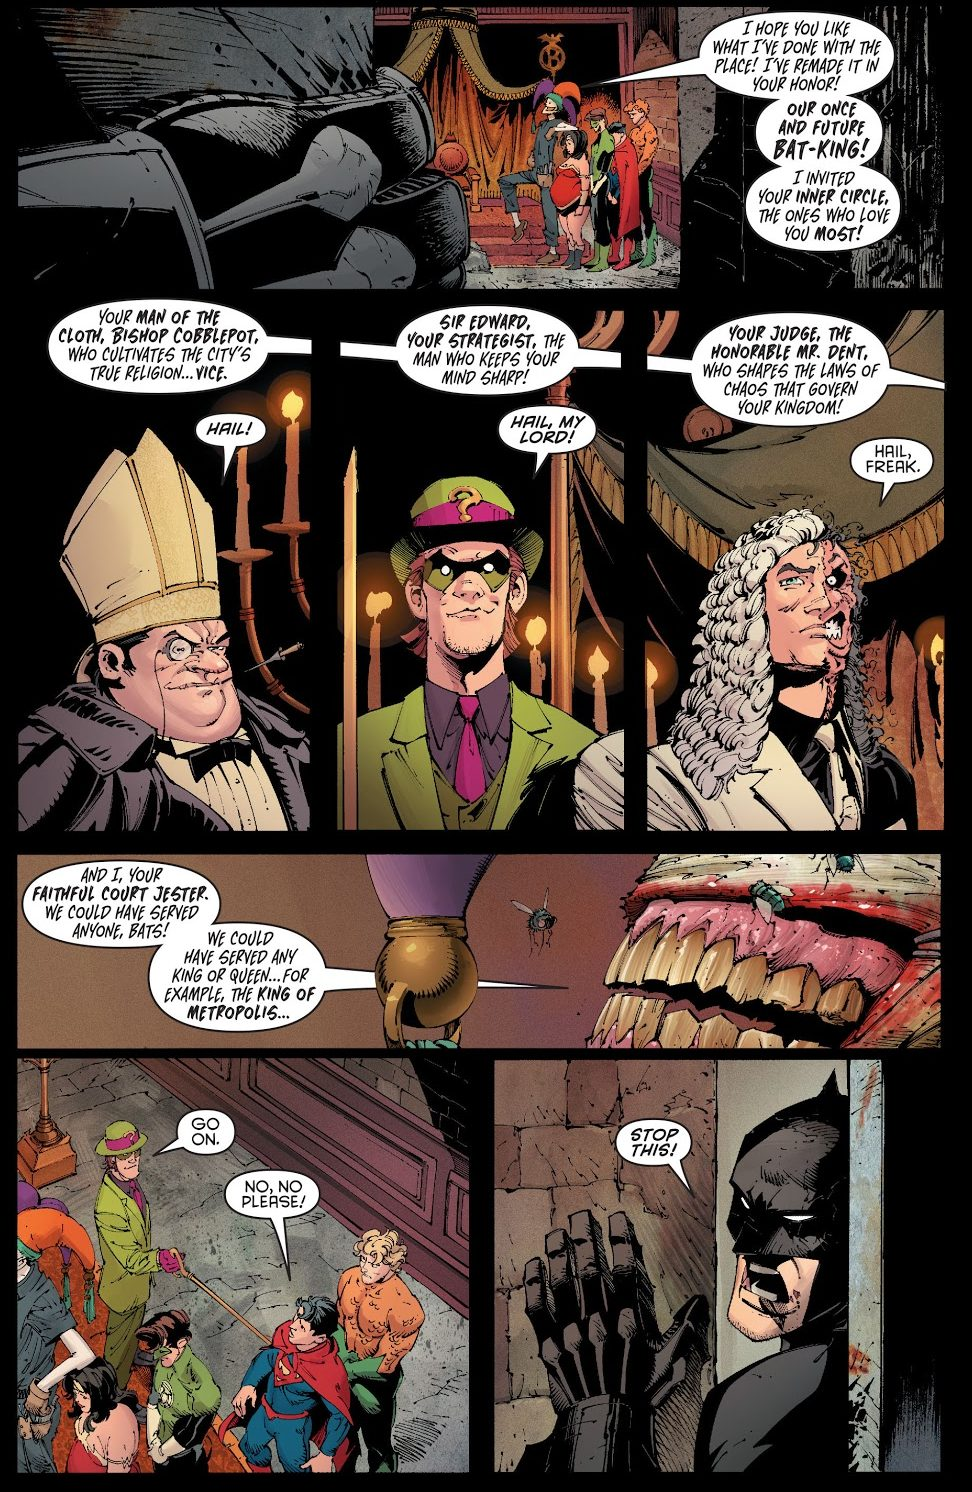 The Joker's Gift To Batman (Death Of The Family)